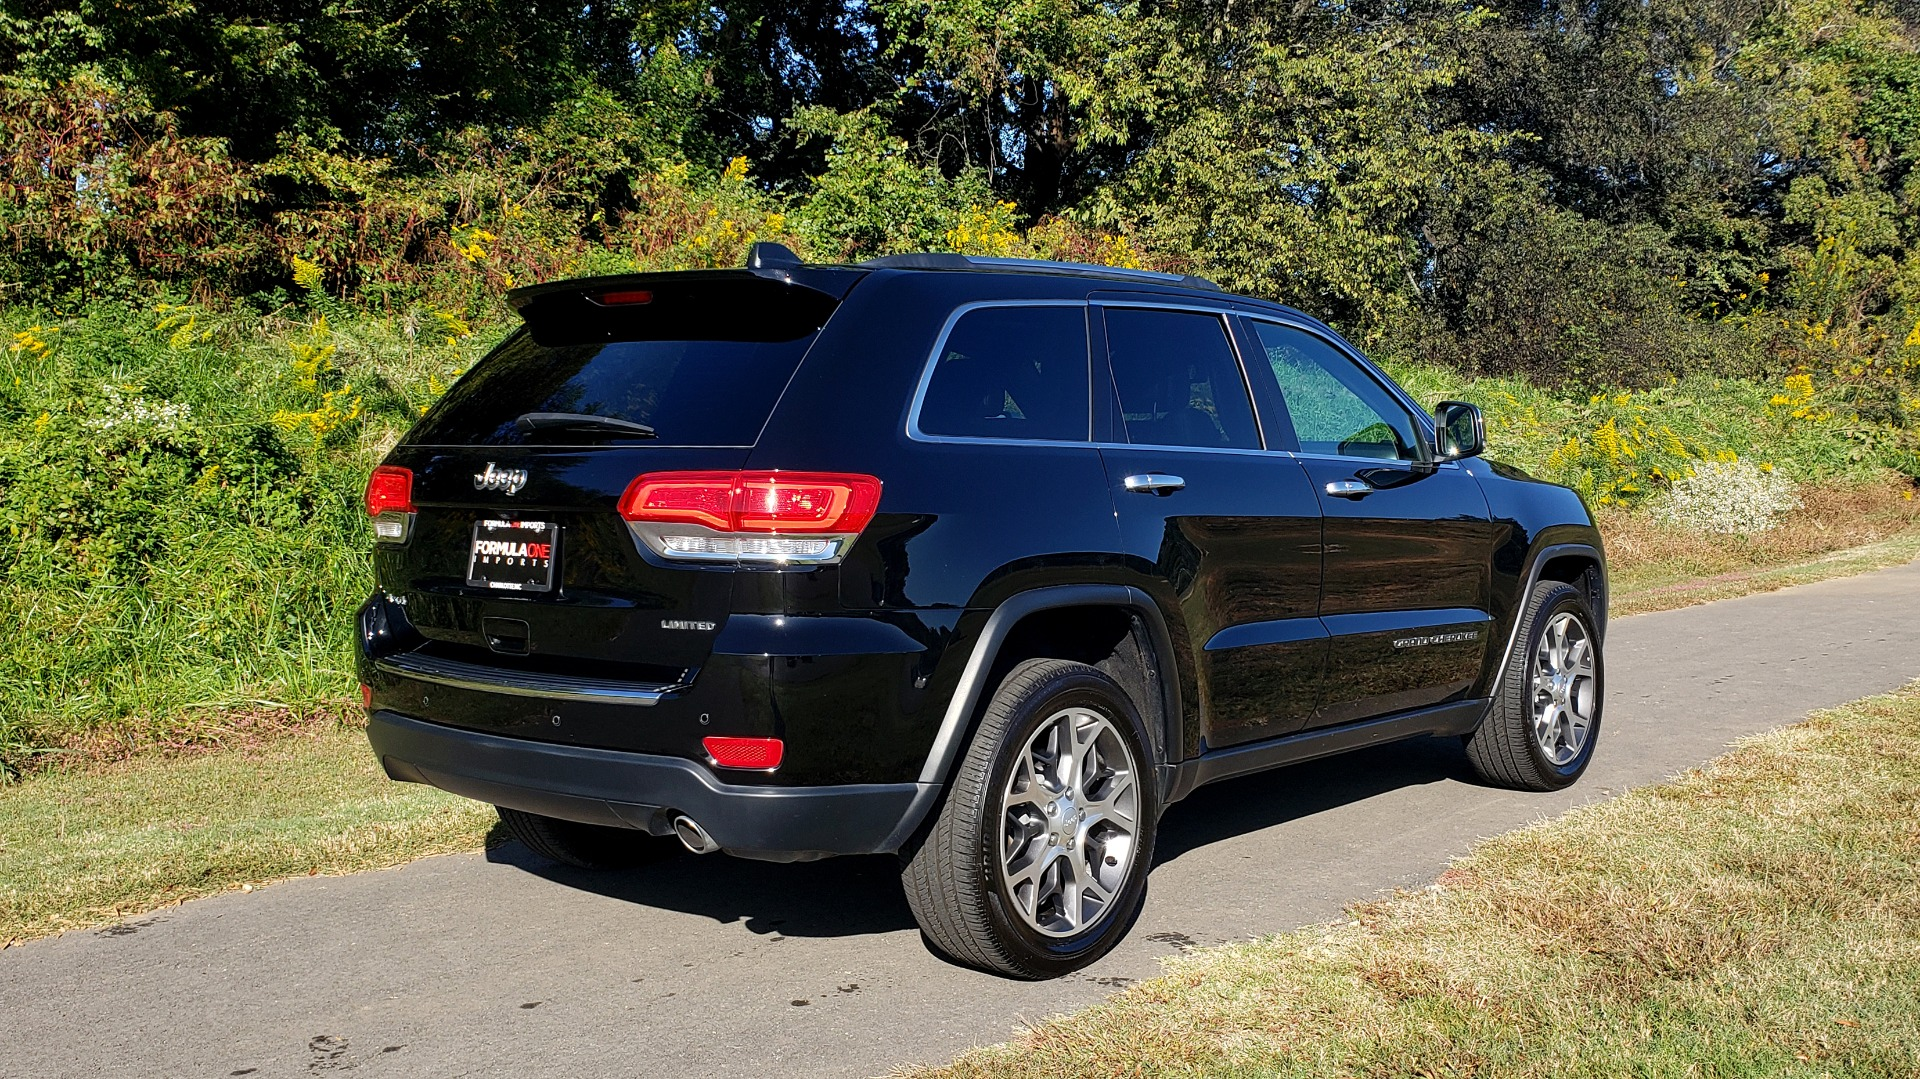 Used 2019 Jeep GRAND CHEROKEE LIMITED 4X4 / NAV / SUNROOF / BLIND SPOT MONITOR / REARVIEW for sale Sold at Formula Imports in Charlotte NC 28227 5